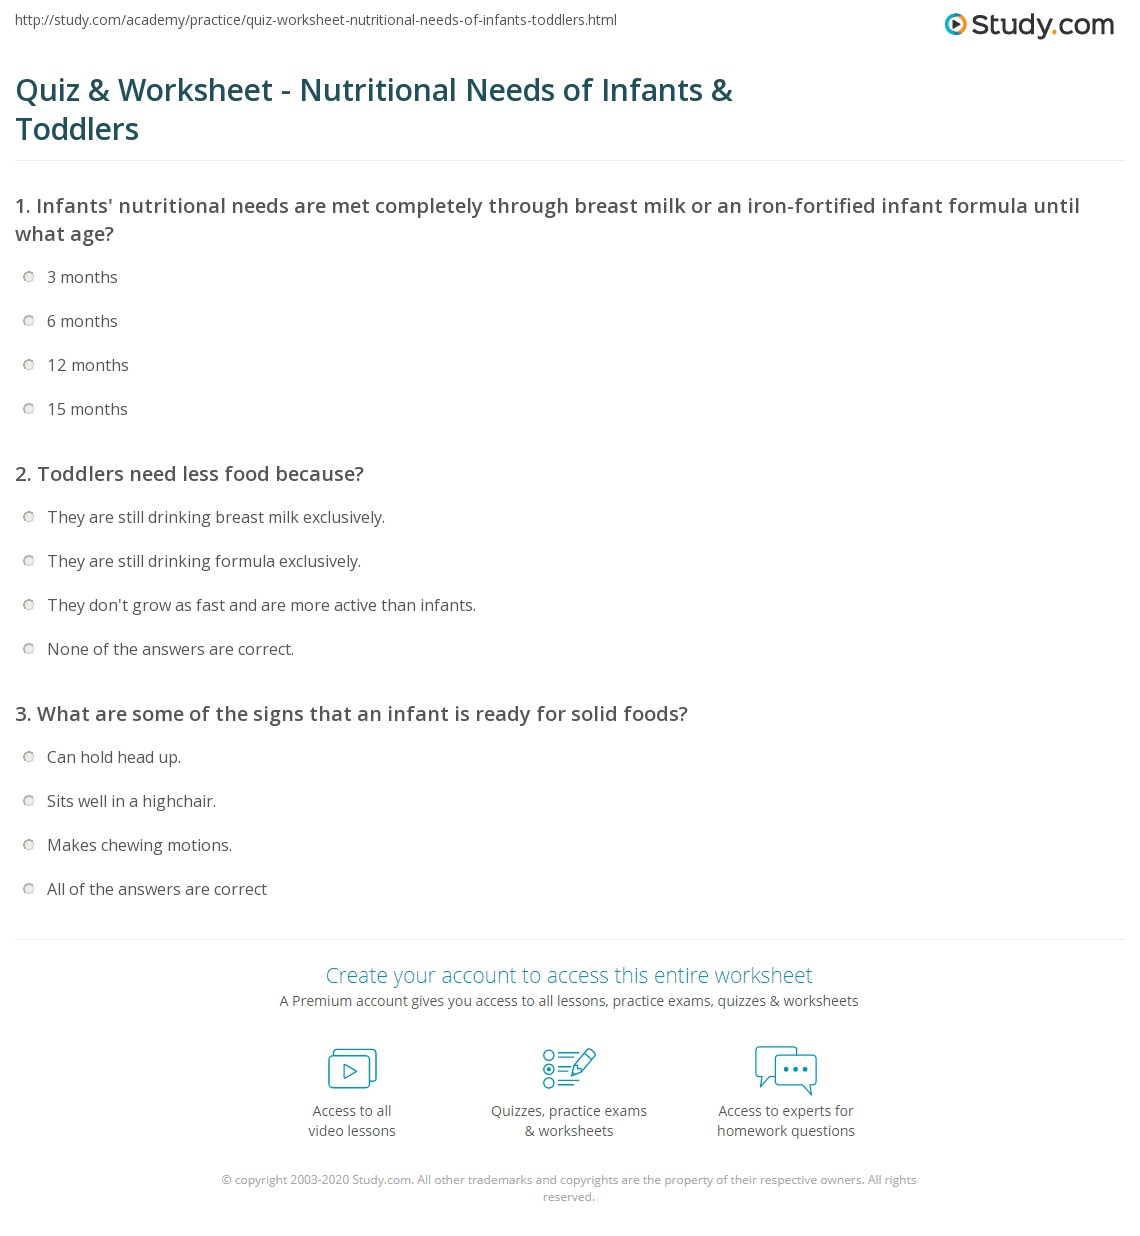 Quiz Worksheet Nutritional Needs of Infants Toddlers – Nutrition Worksheets for Highschool Students